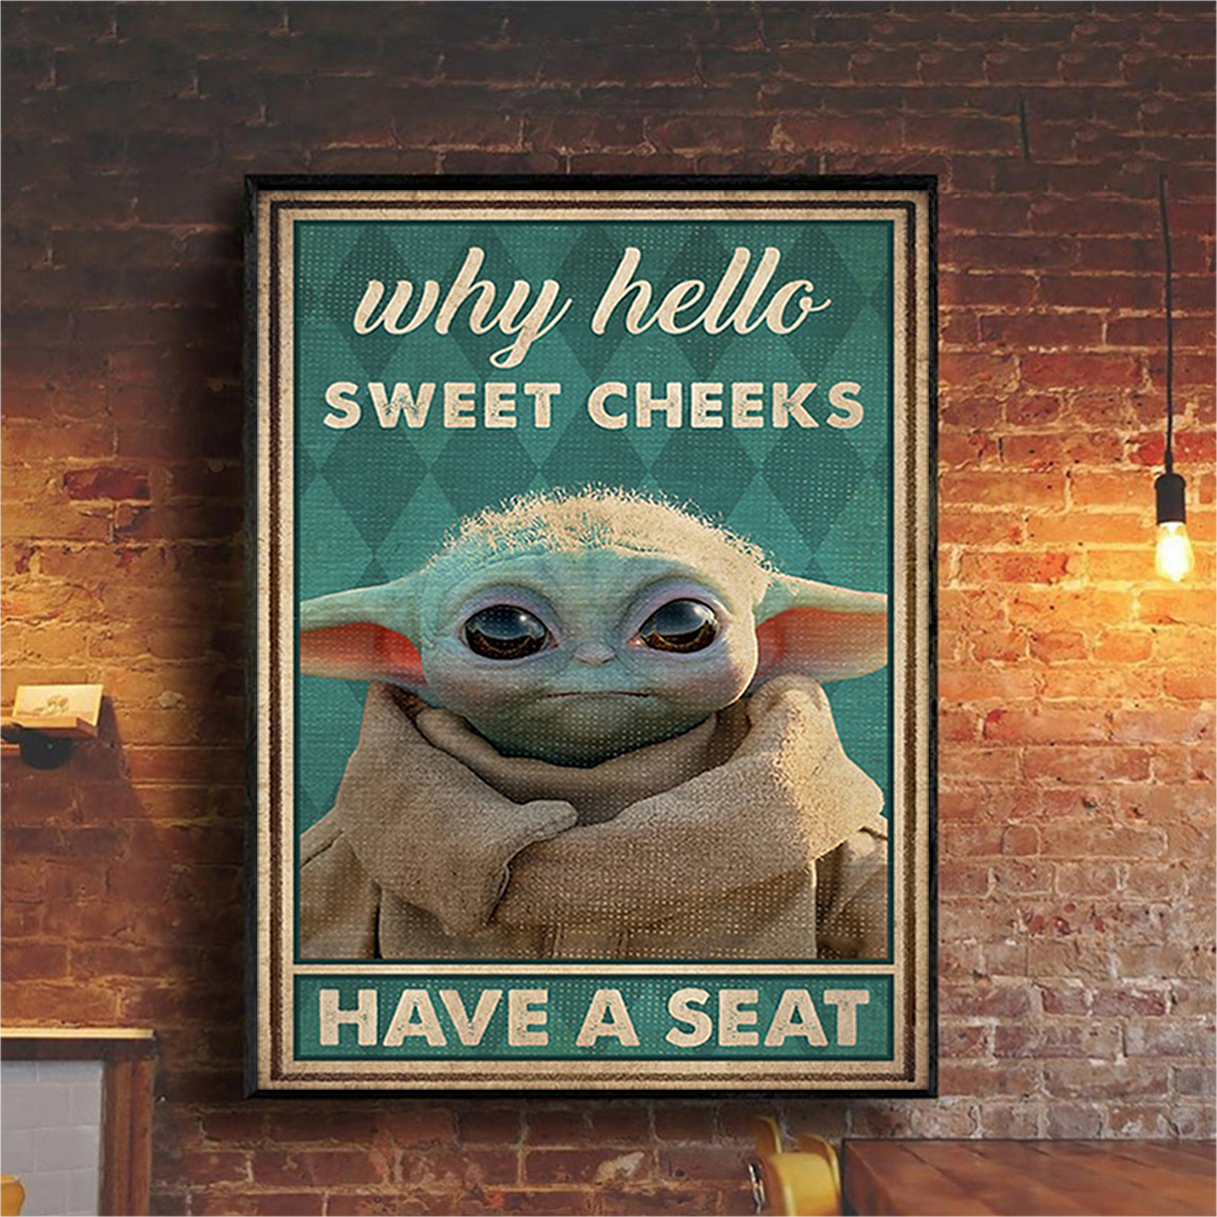 Baby yod why hello sweet cheeks have a seat poster A3